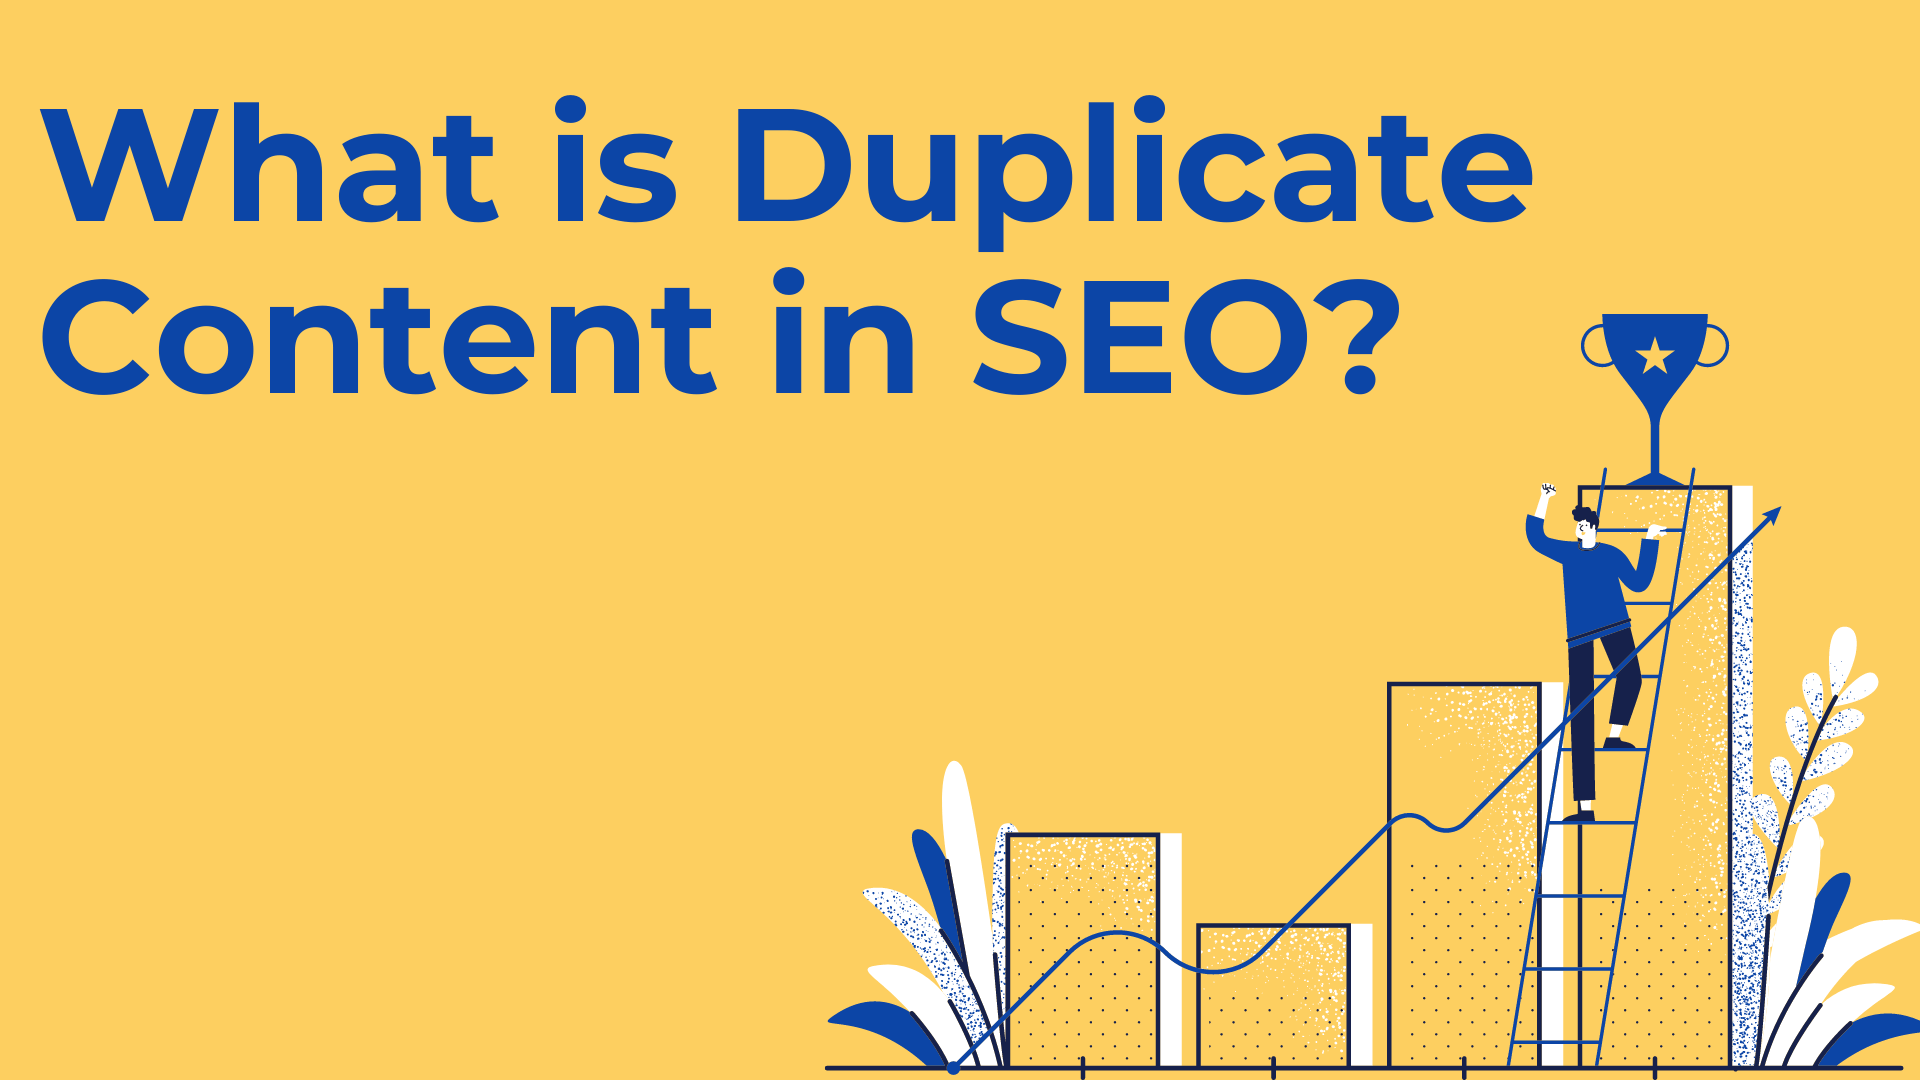 What is Duplicate Content in SEO?